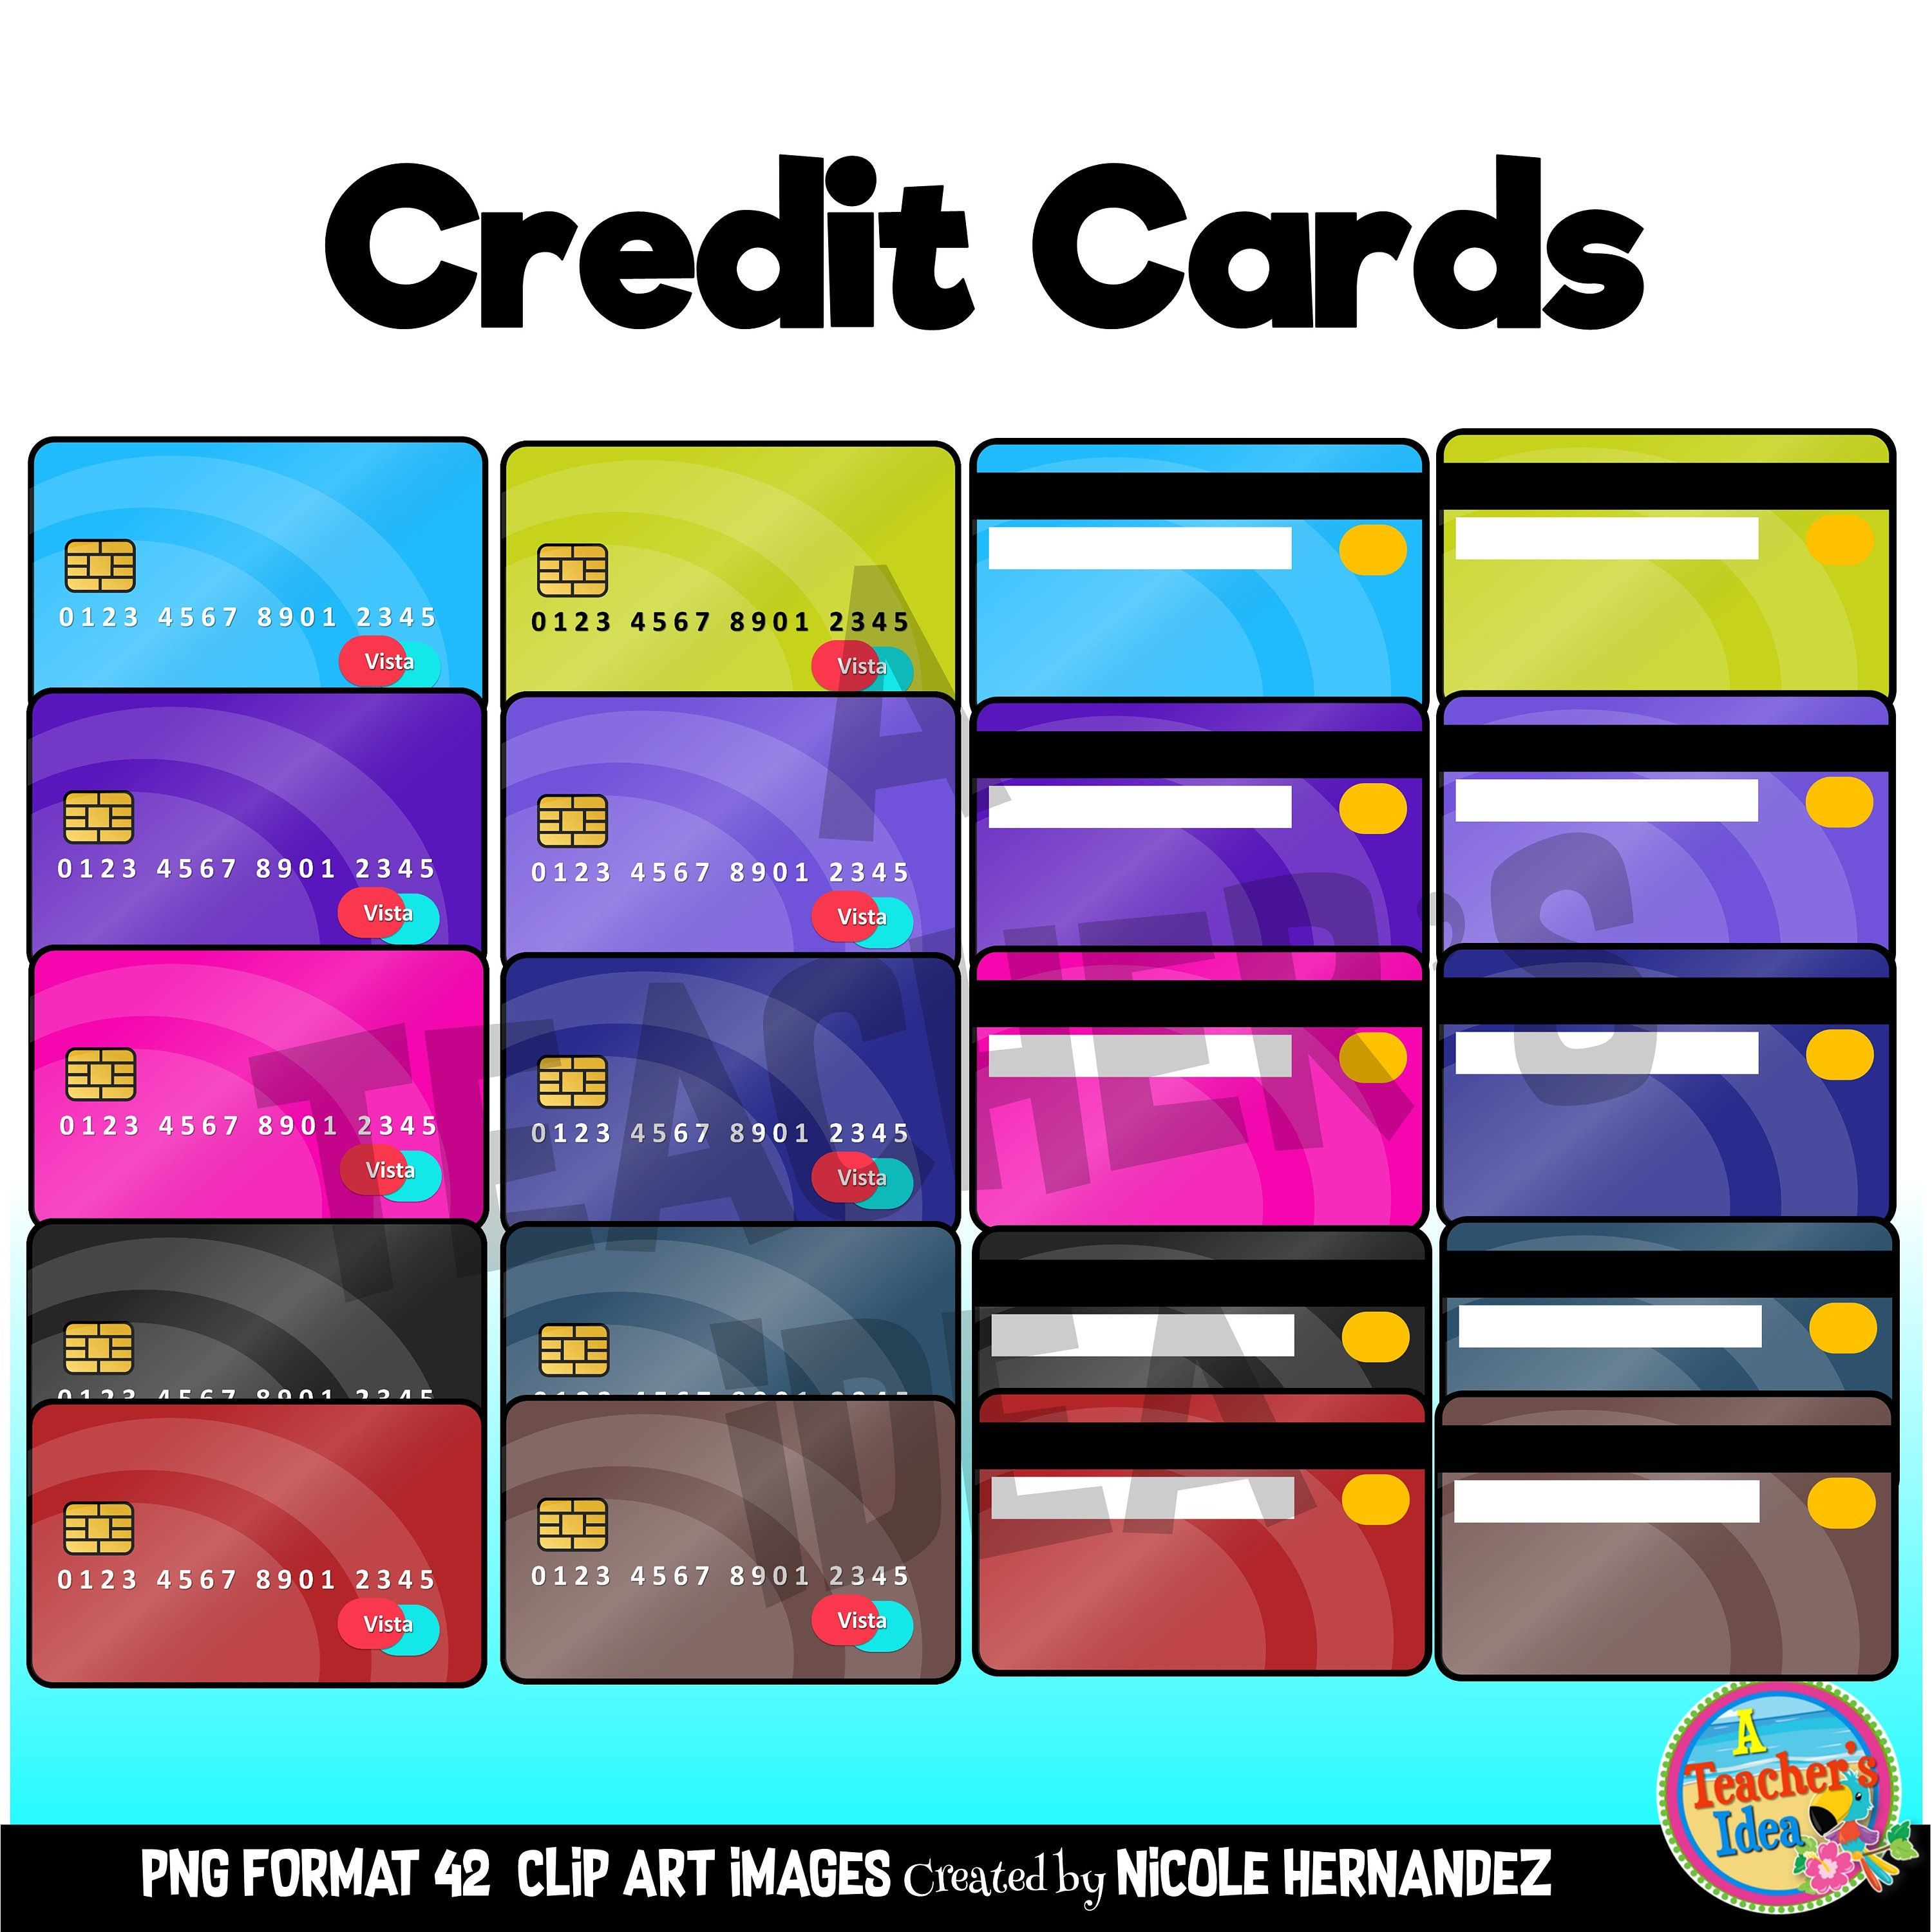 Credit card clipart for commercial use credit card